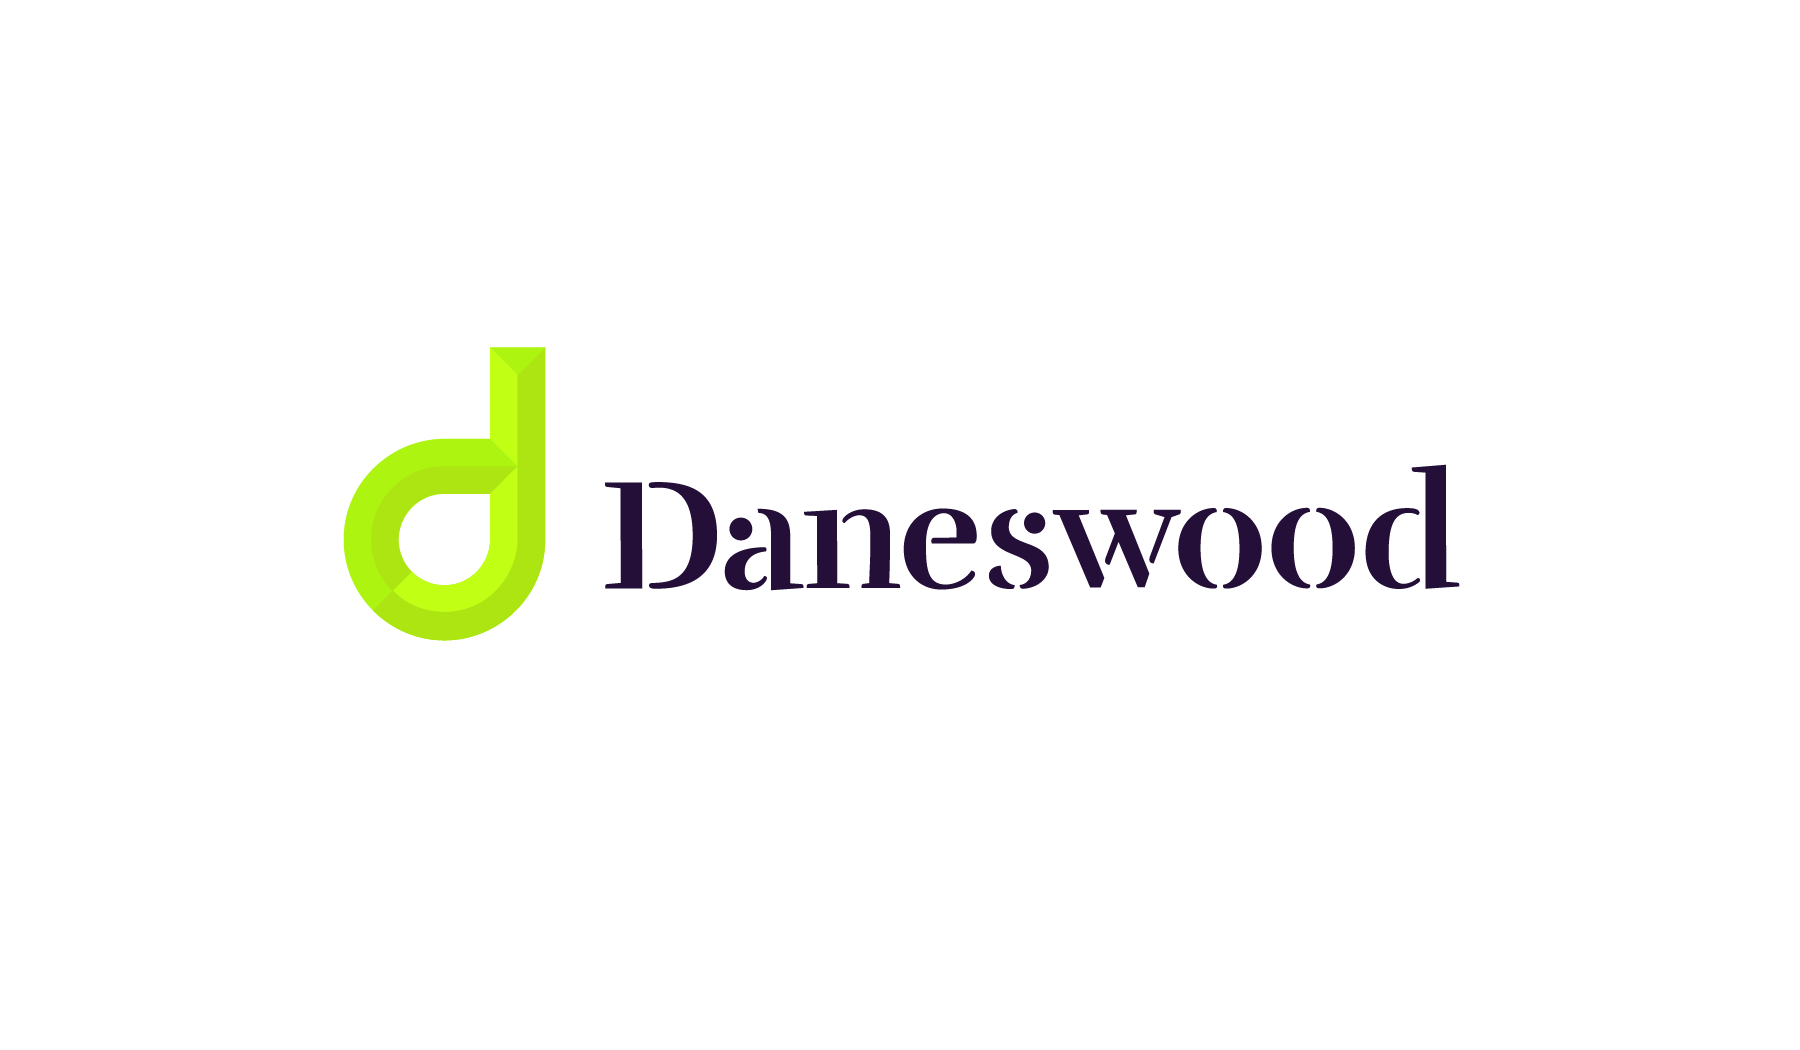 daneswood-logotype@2x